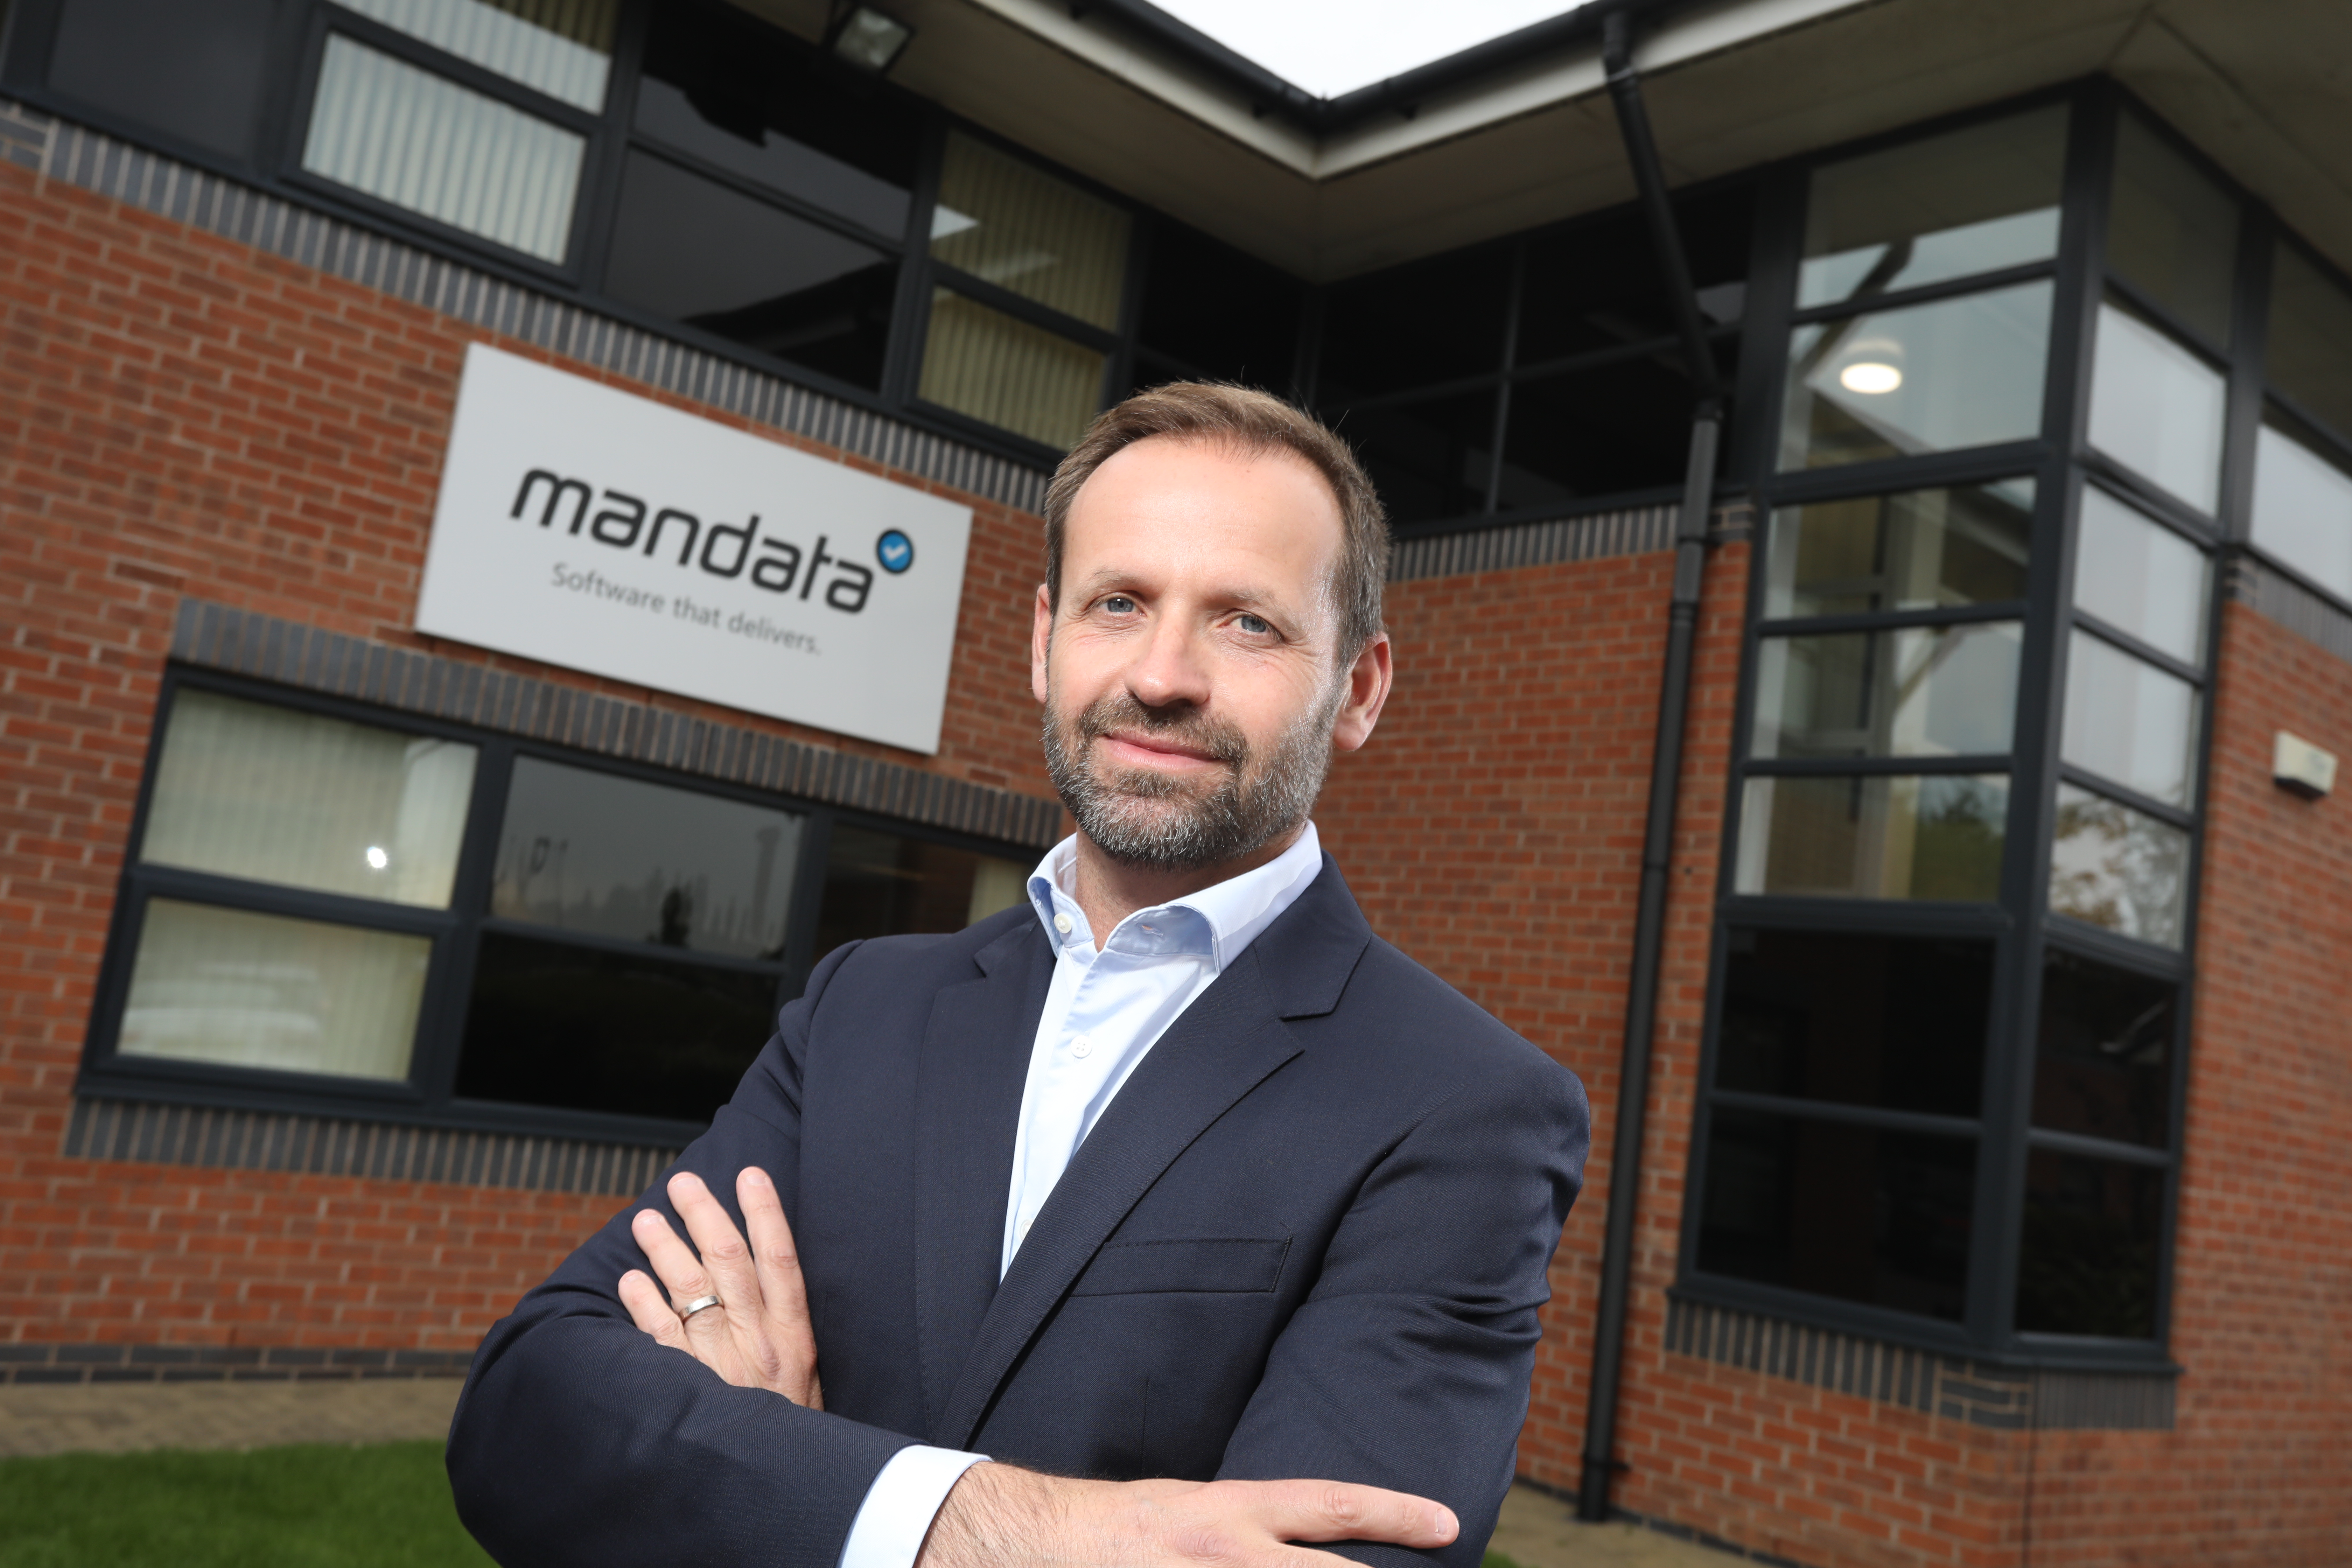 Chris Rigg new CEO appointed at Mandata Transport Management Software